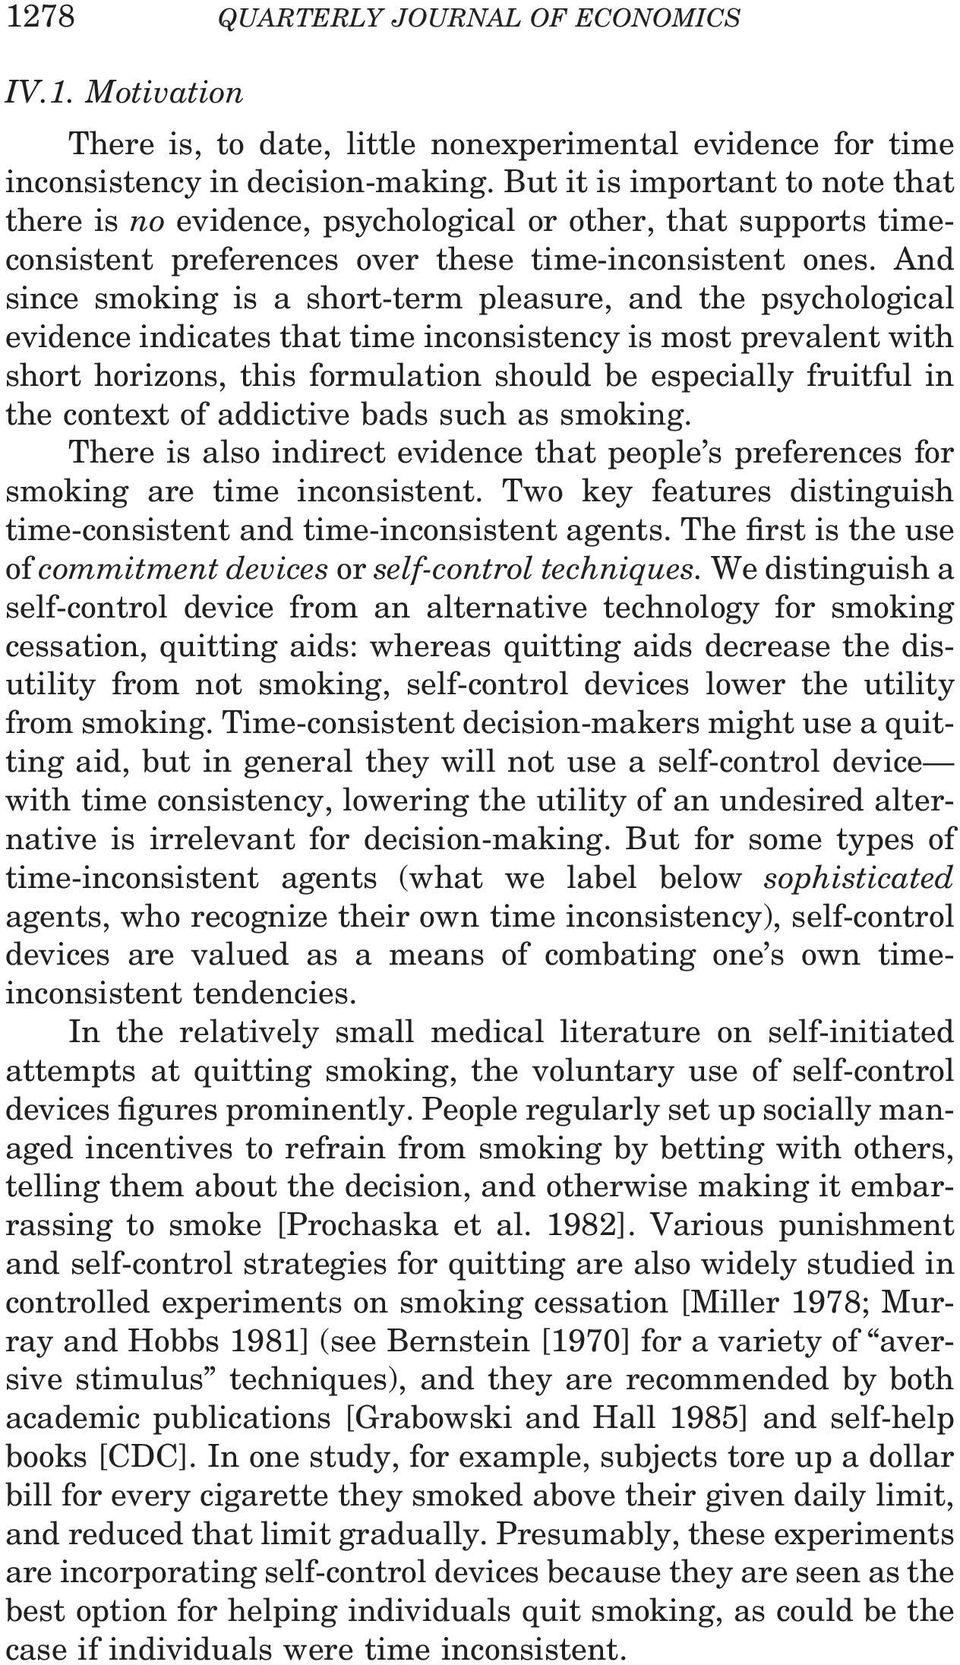 And since smoking is a short-term pleasure, and the psychological evidence indicates that time inconsistency is most prevalent with short horizons, this formulation should be especially fruitful in